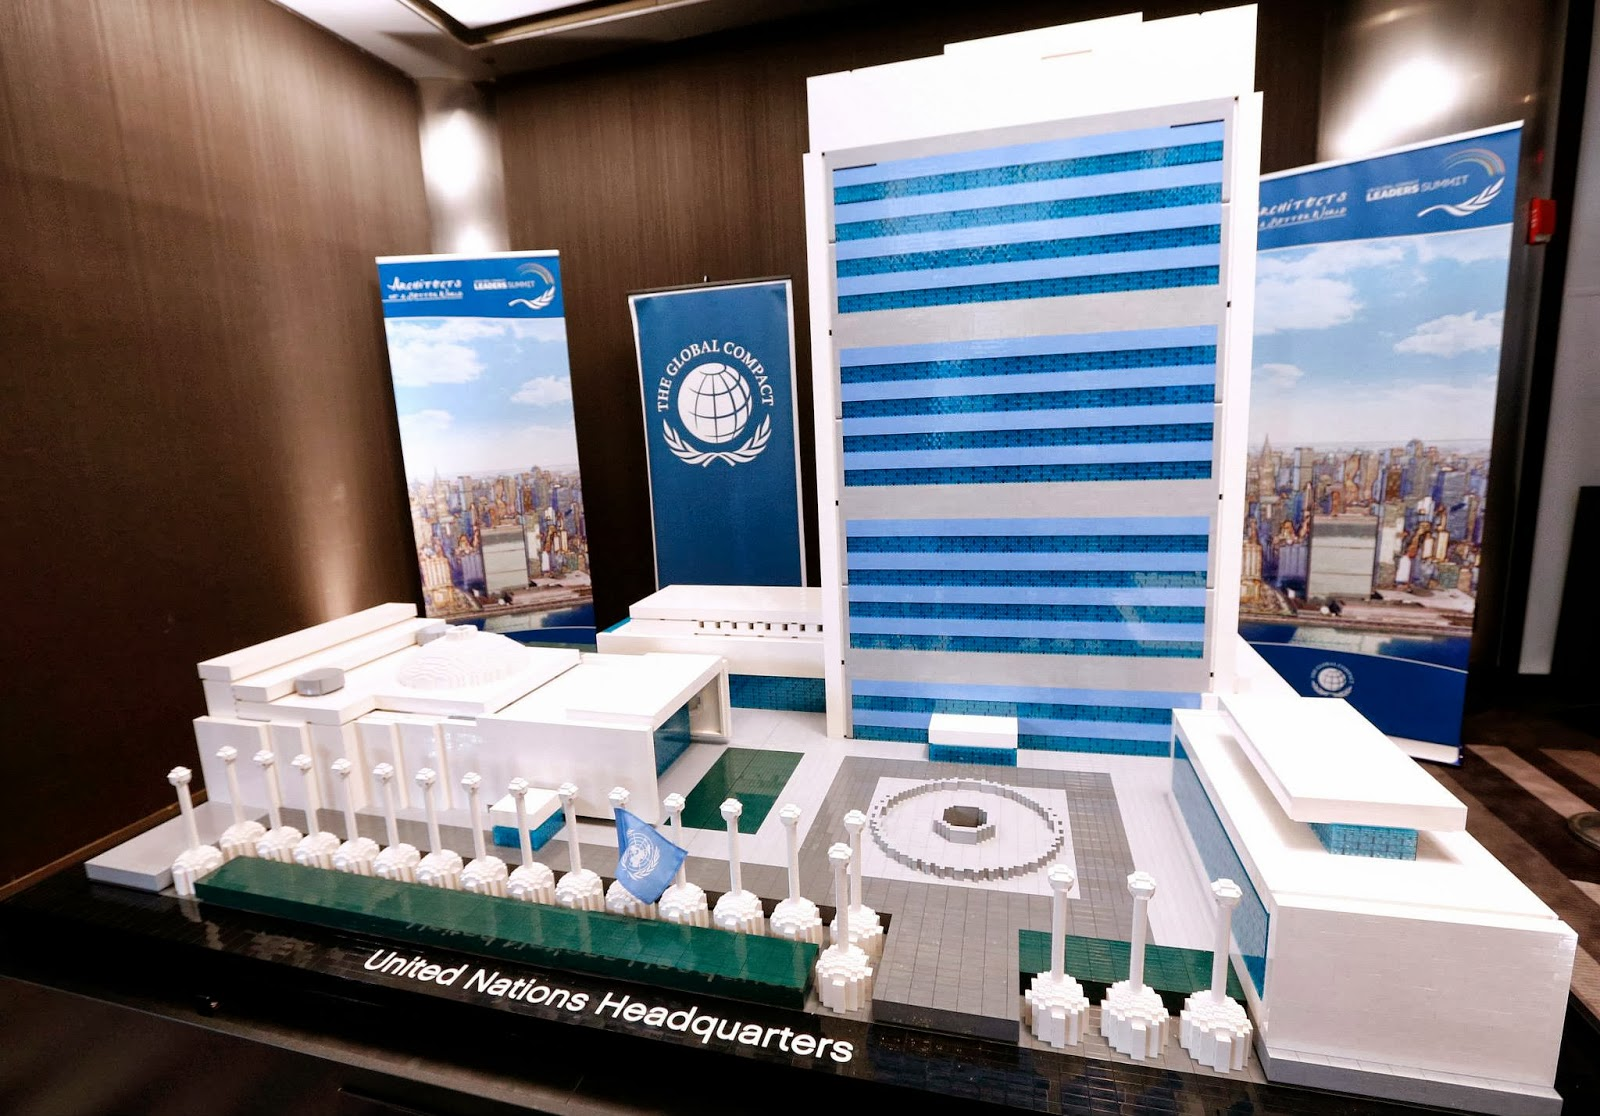 Noticias varias Lego+Architecture+United+Nations+Headquarters+giant+sized